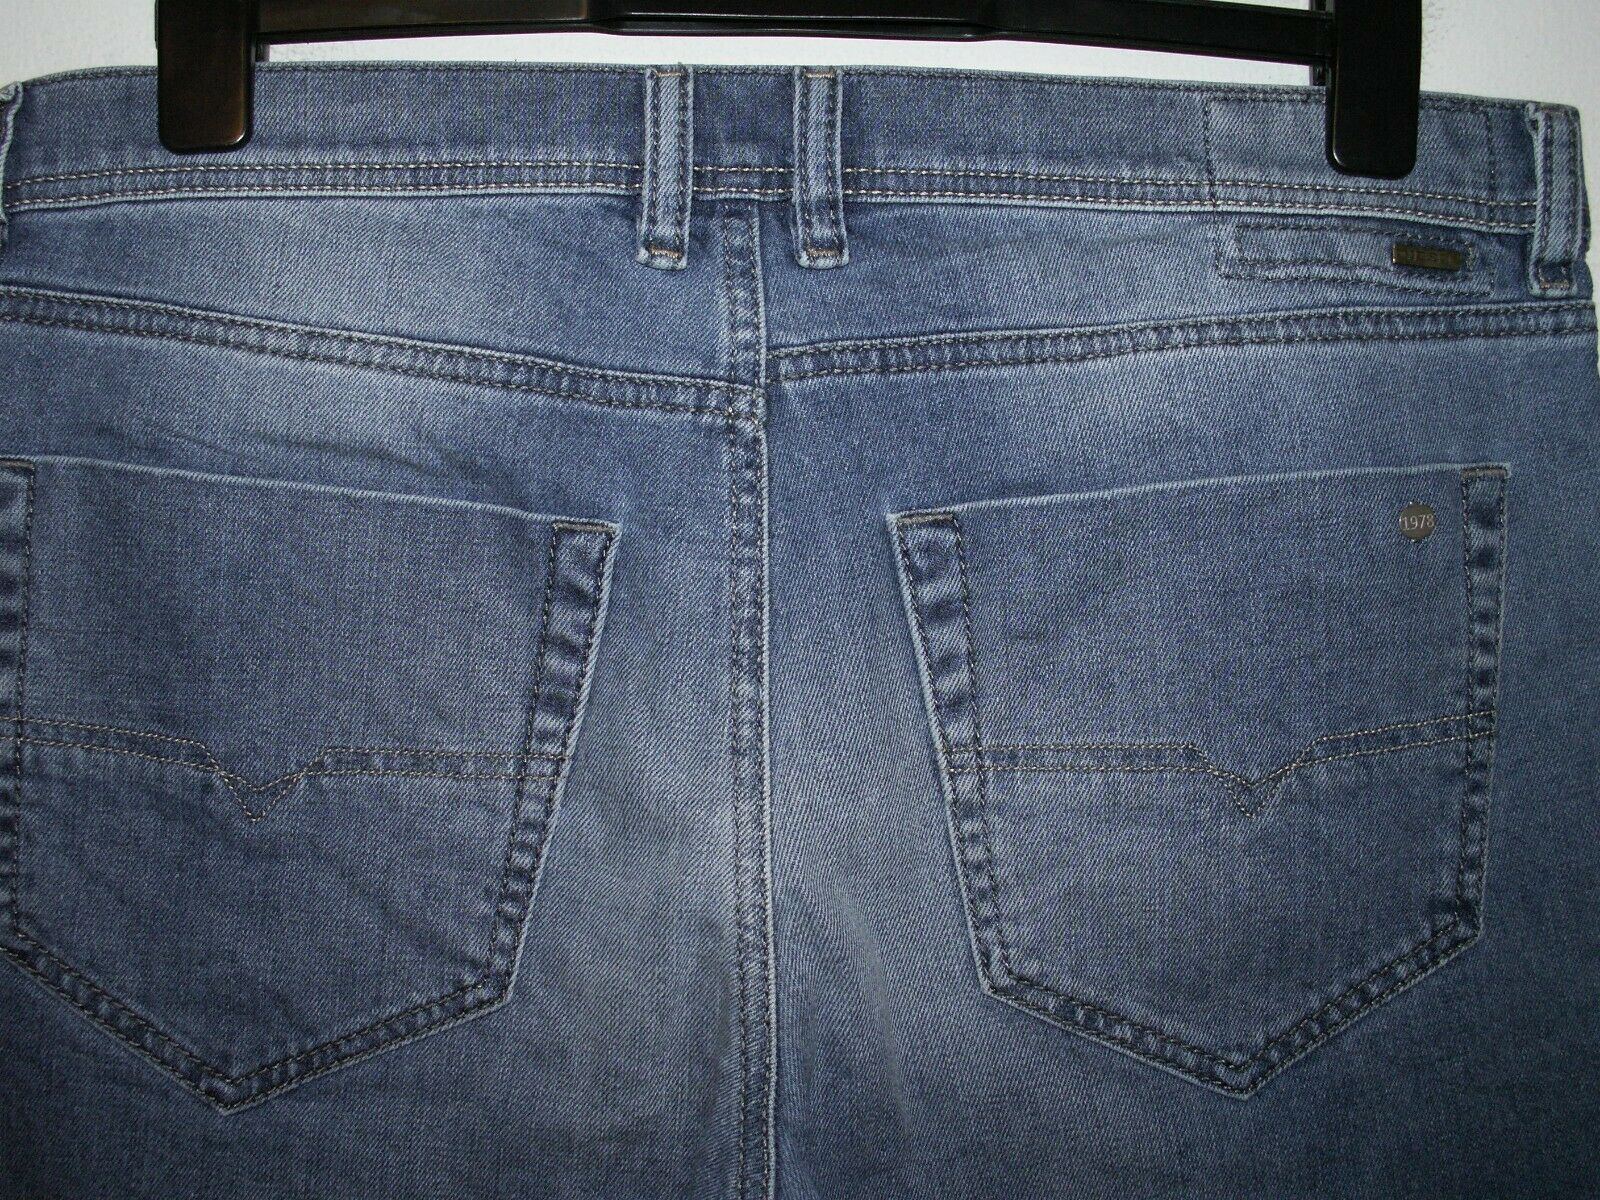 Diesel Tepphar Slim Coupe voitureougete Jeans Laver 0842 H Stretch W34 L32 (a4713)